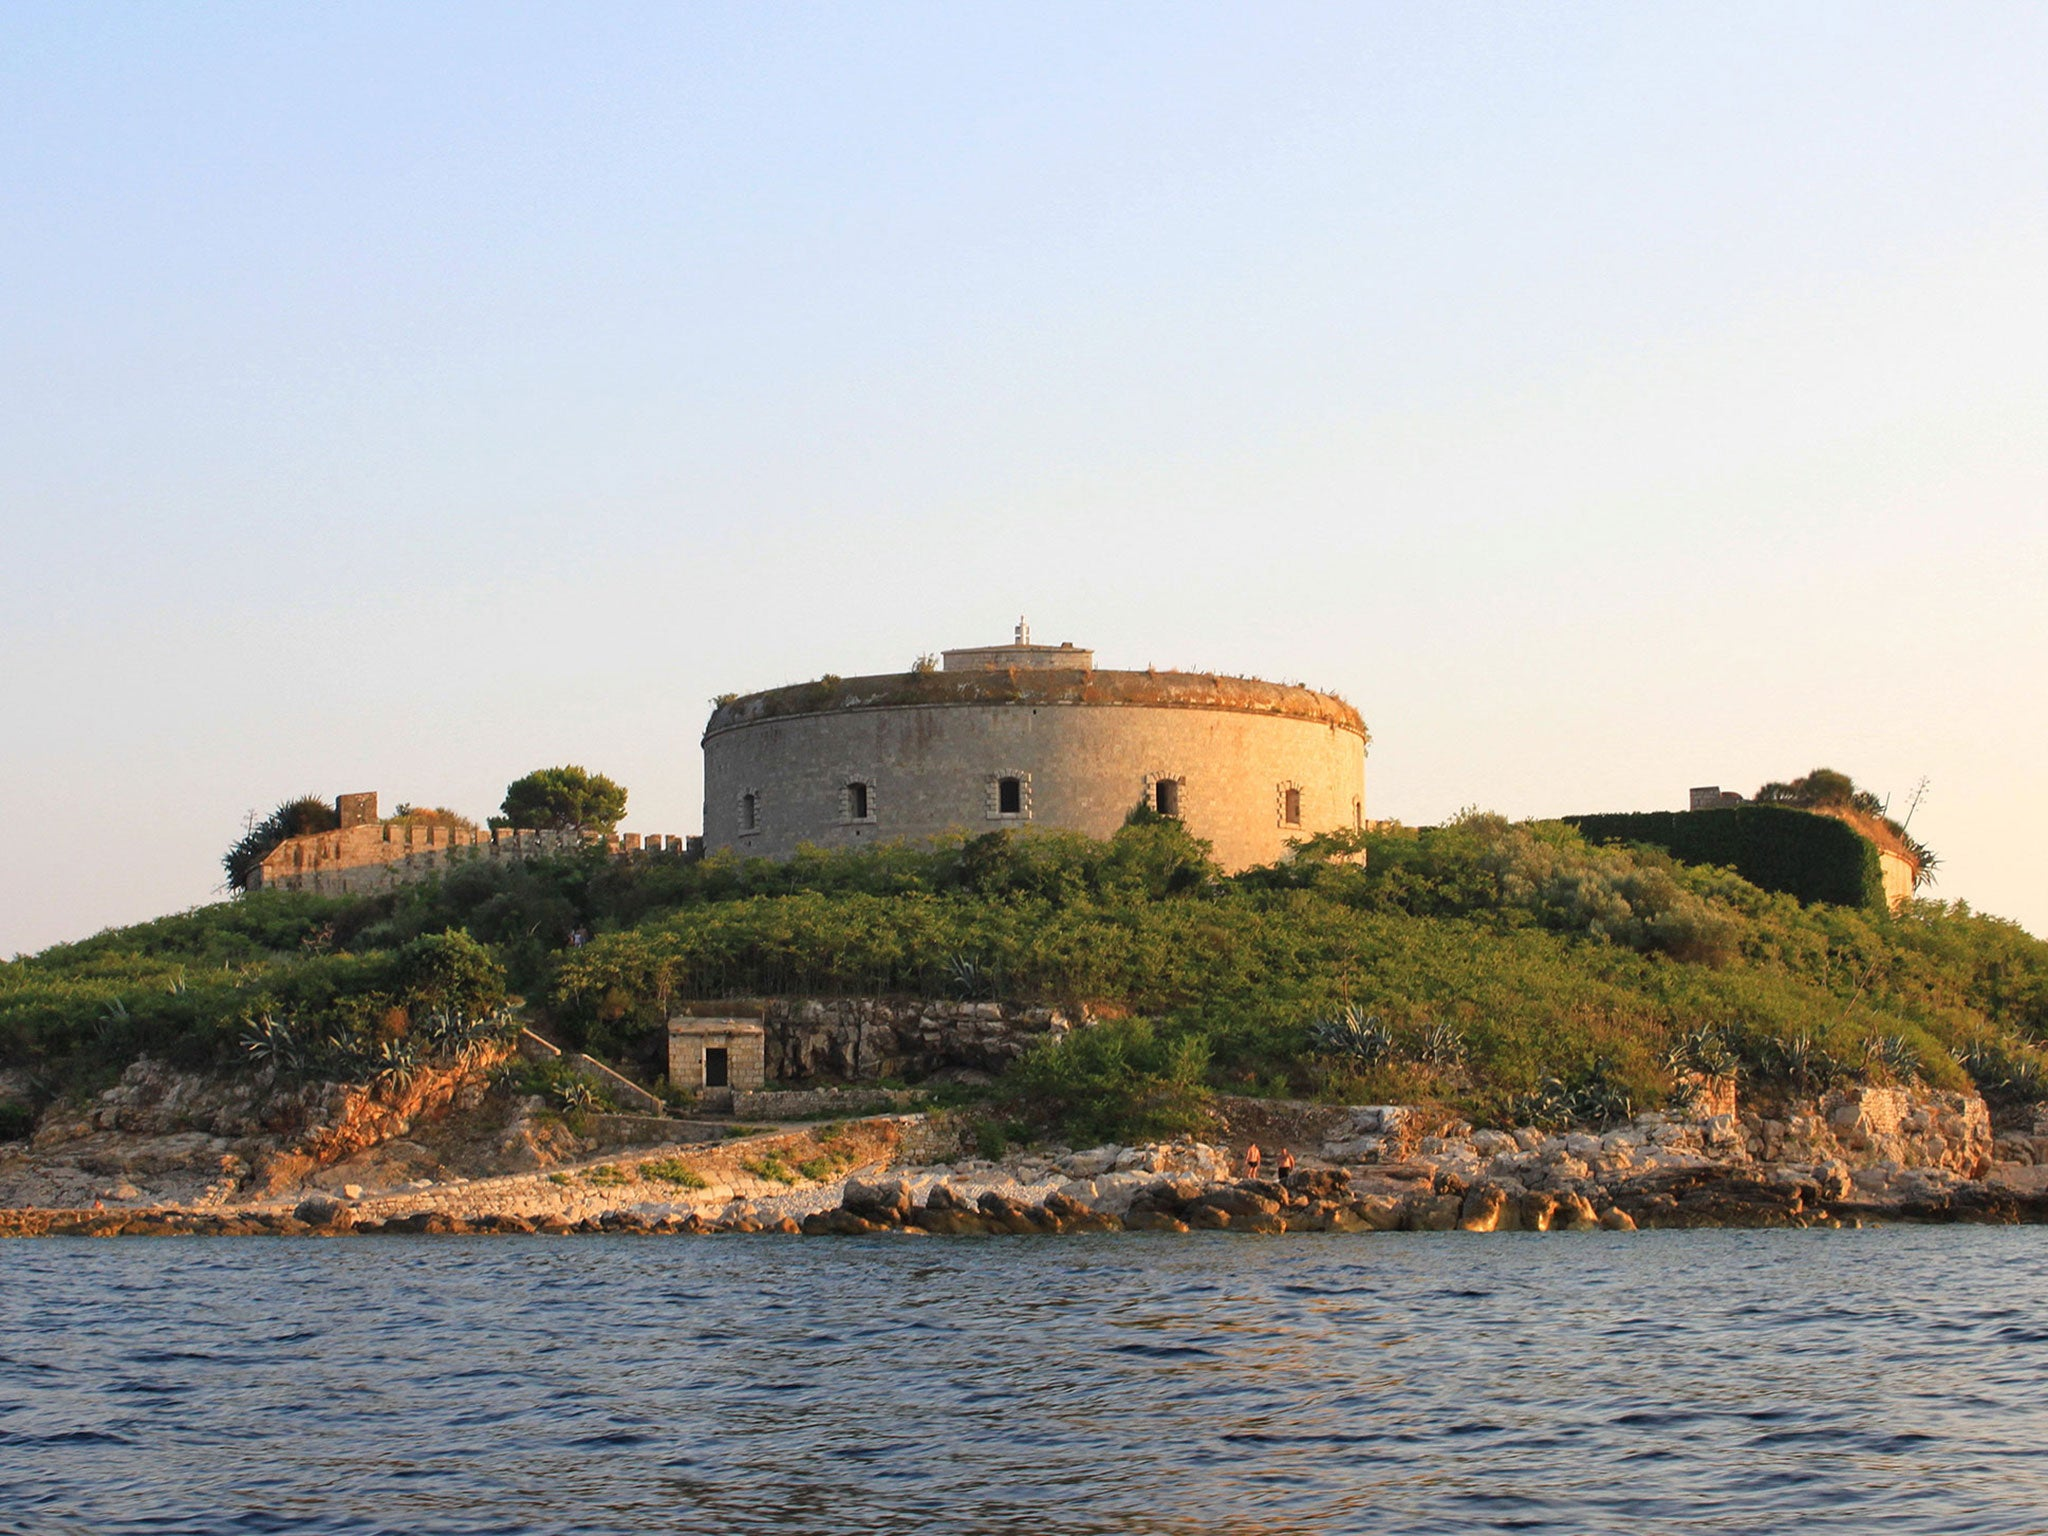 Mamula Island ex concentration camp to become luxury resort